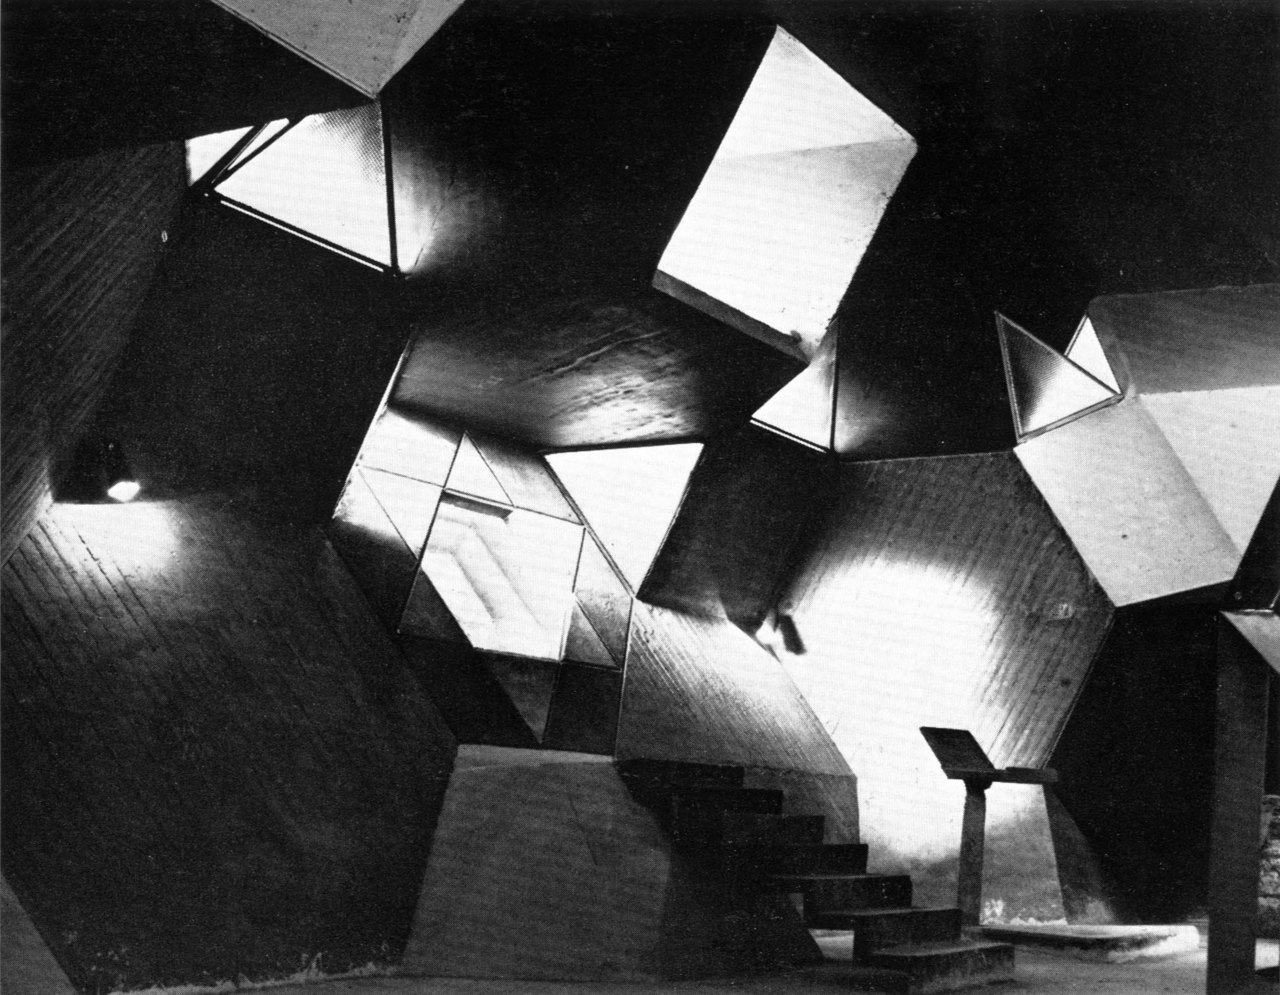 Synagogue, Negev Desert, Israel, 1967-69 (Alfred Neumann and Zvi Hecker)